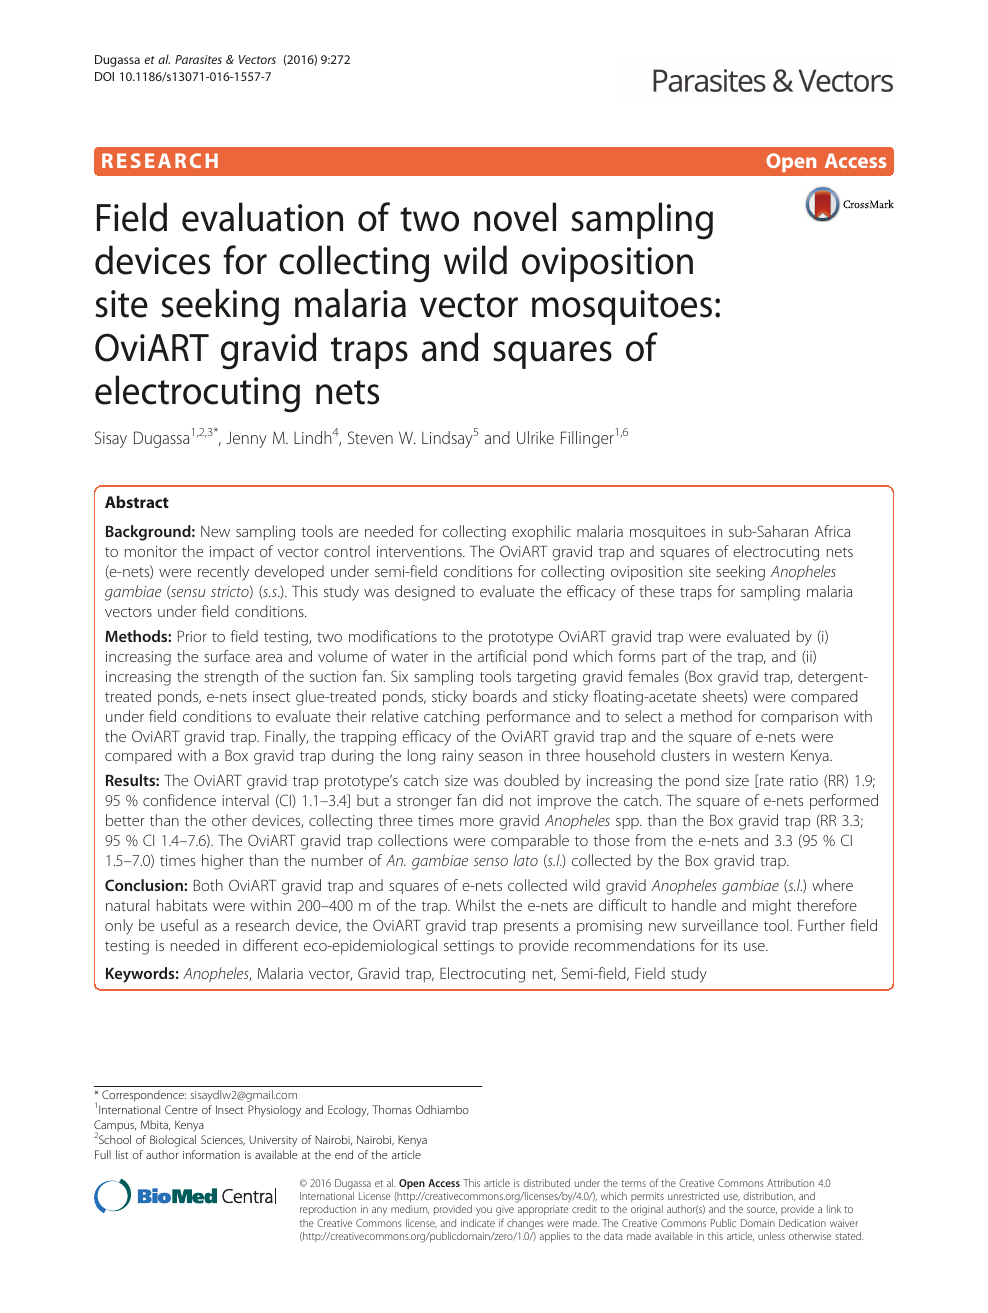 Field evaluation of two novel sampling devices for